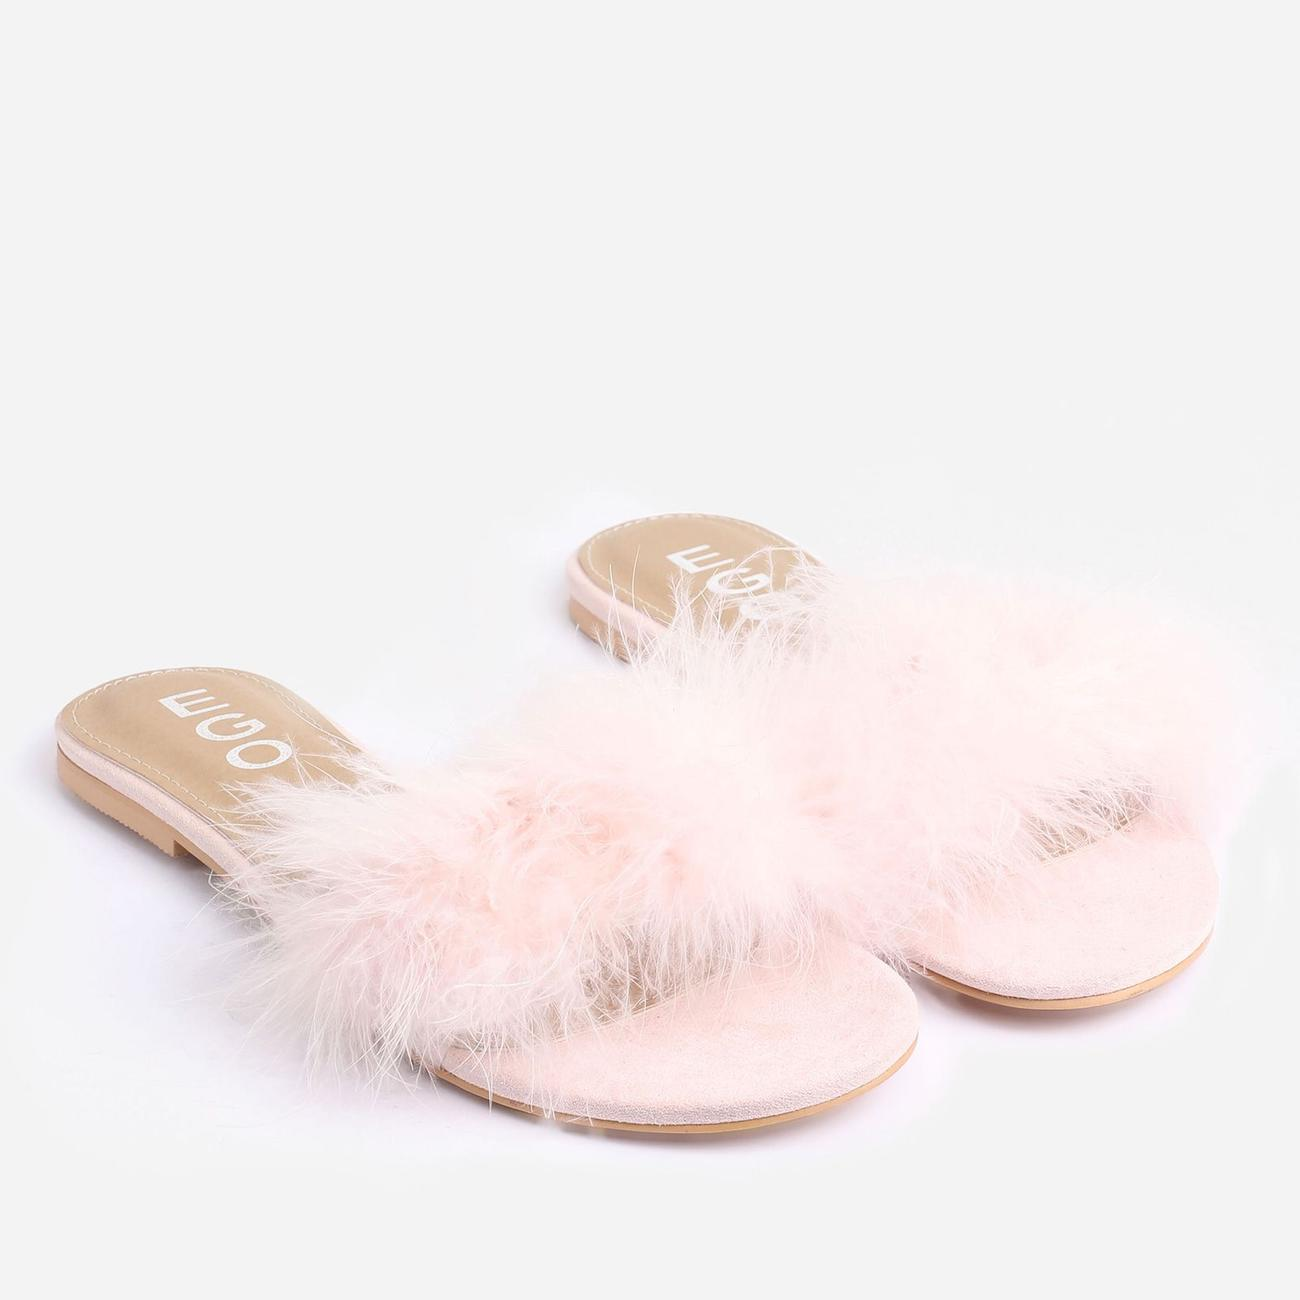 Bestfriend Faux Feather Detail Flat Slider Sandal In Pink Faux Suede Image 2